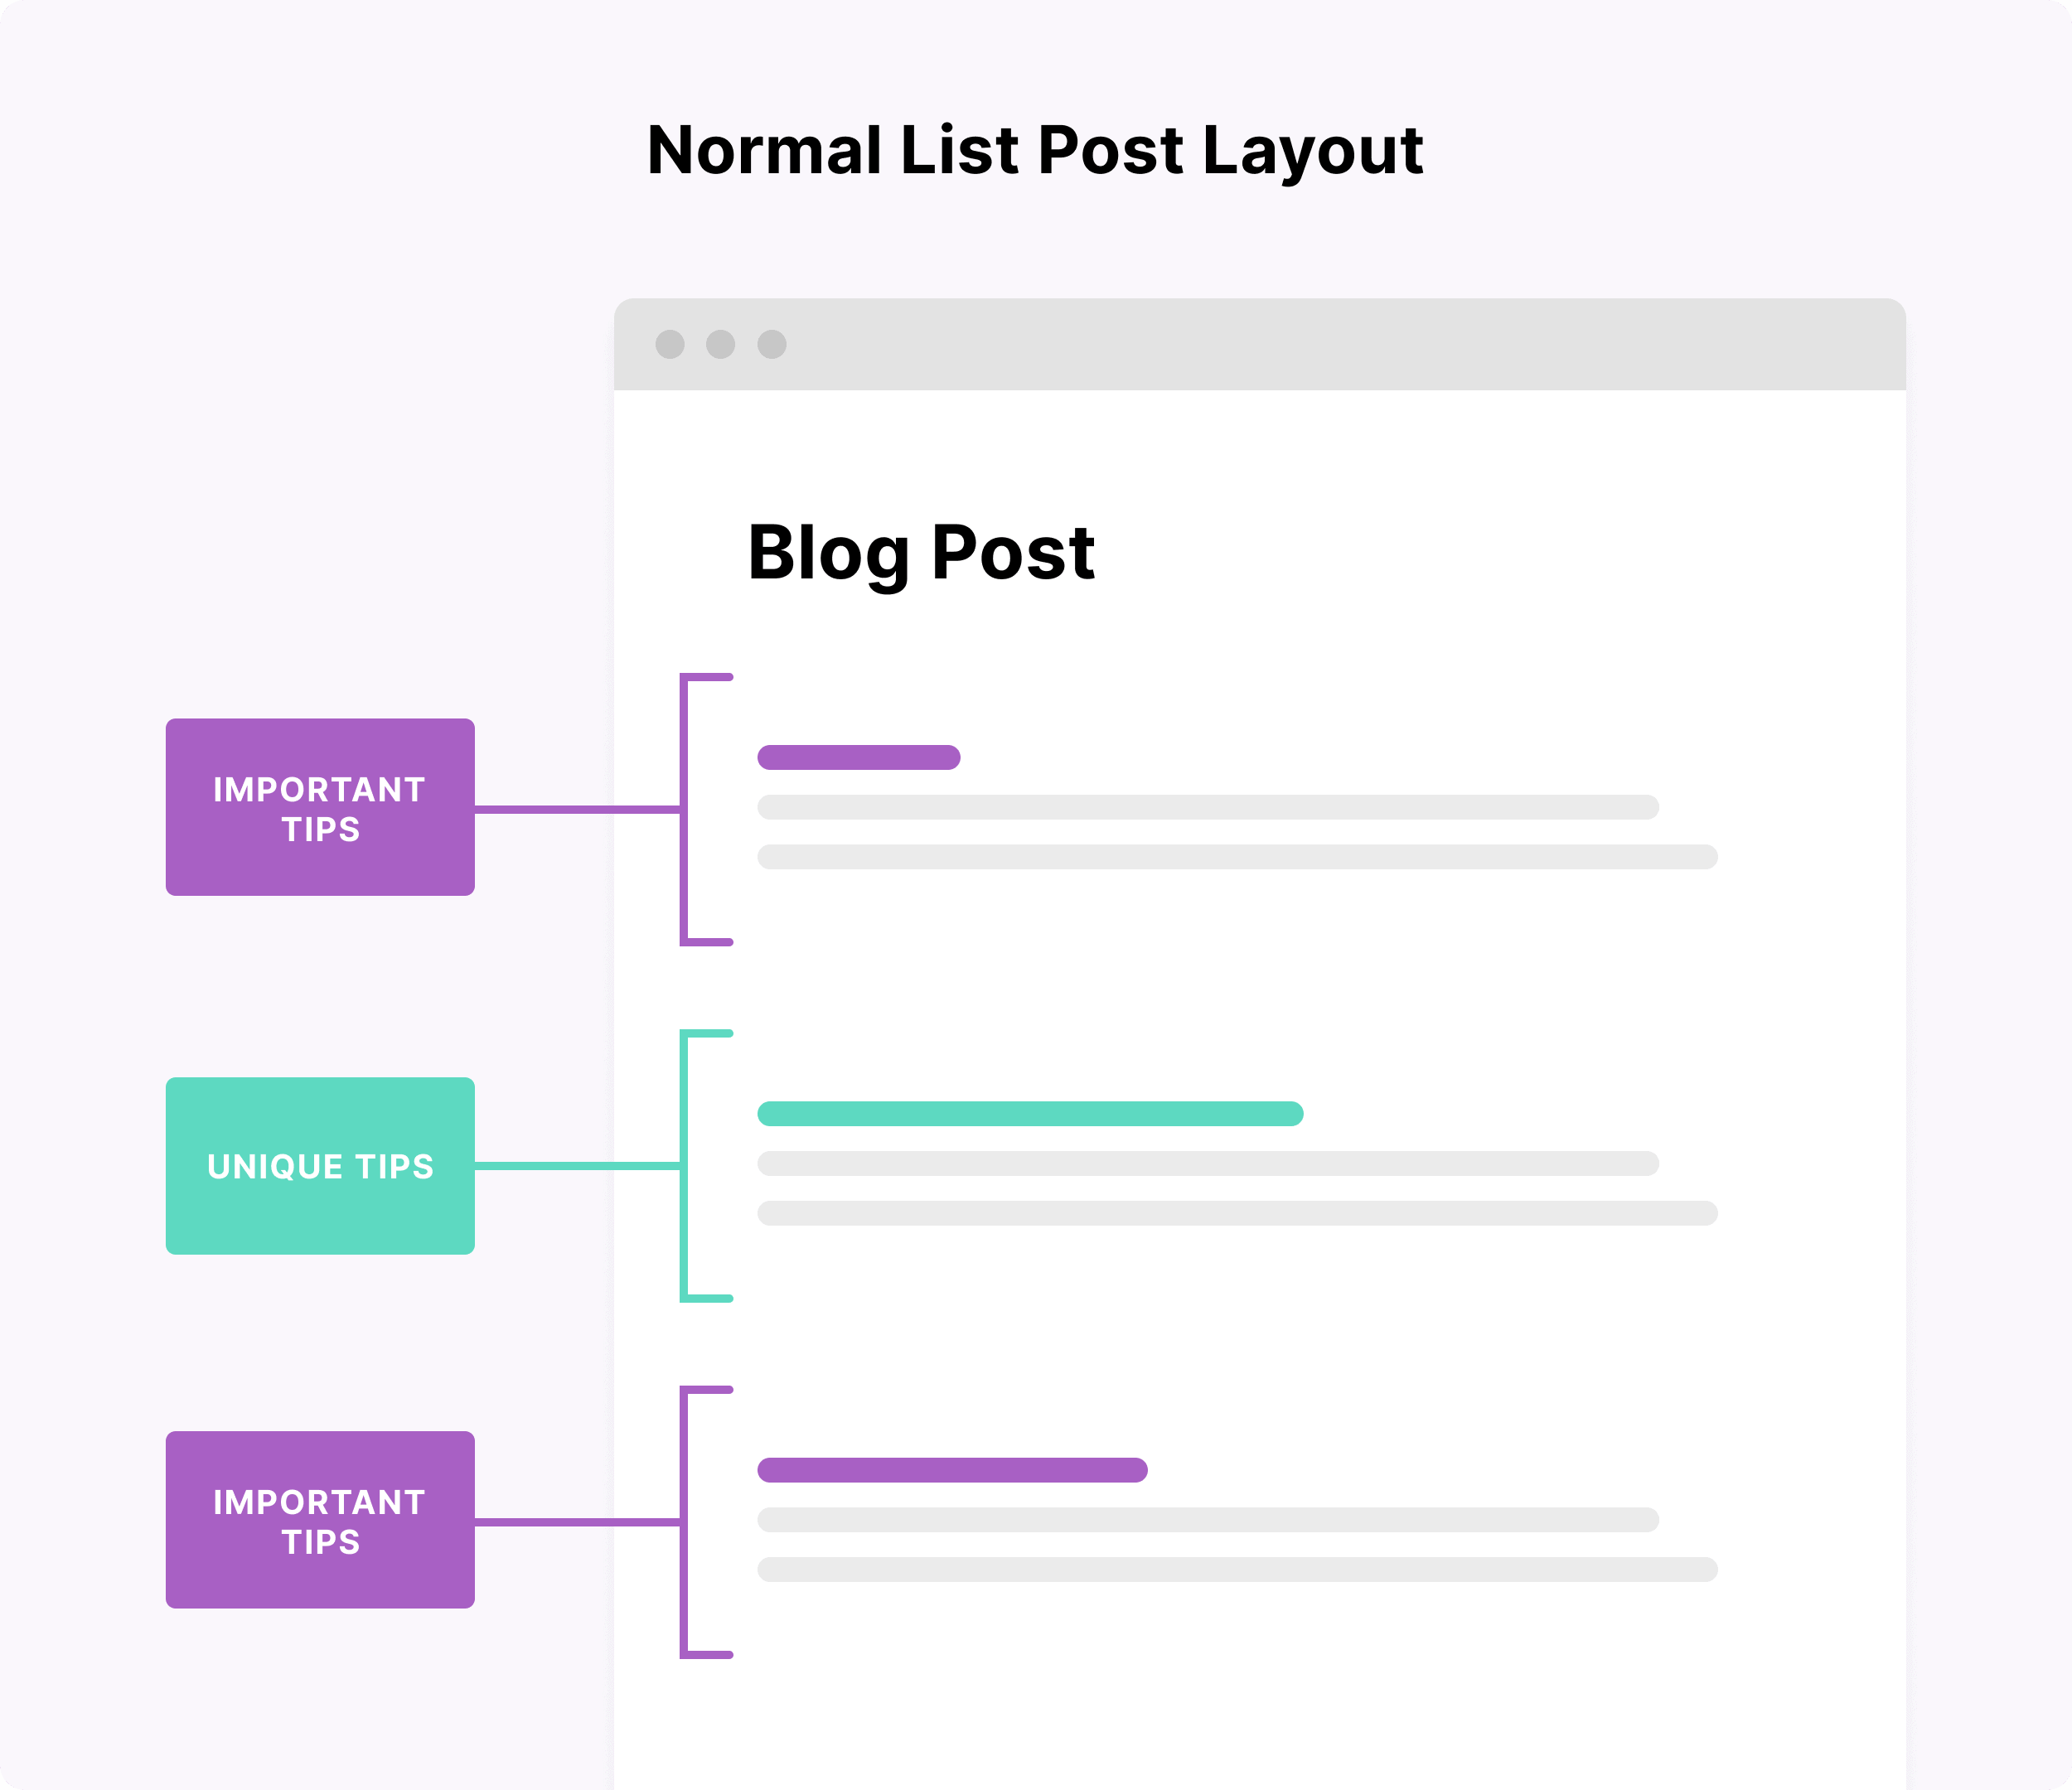 Normal list post layout